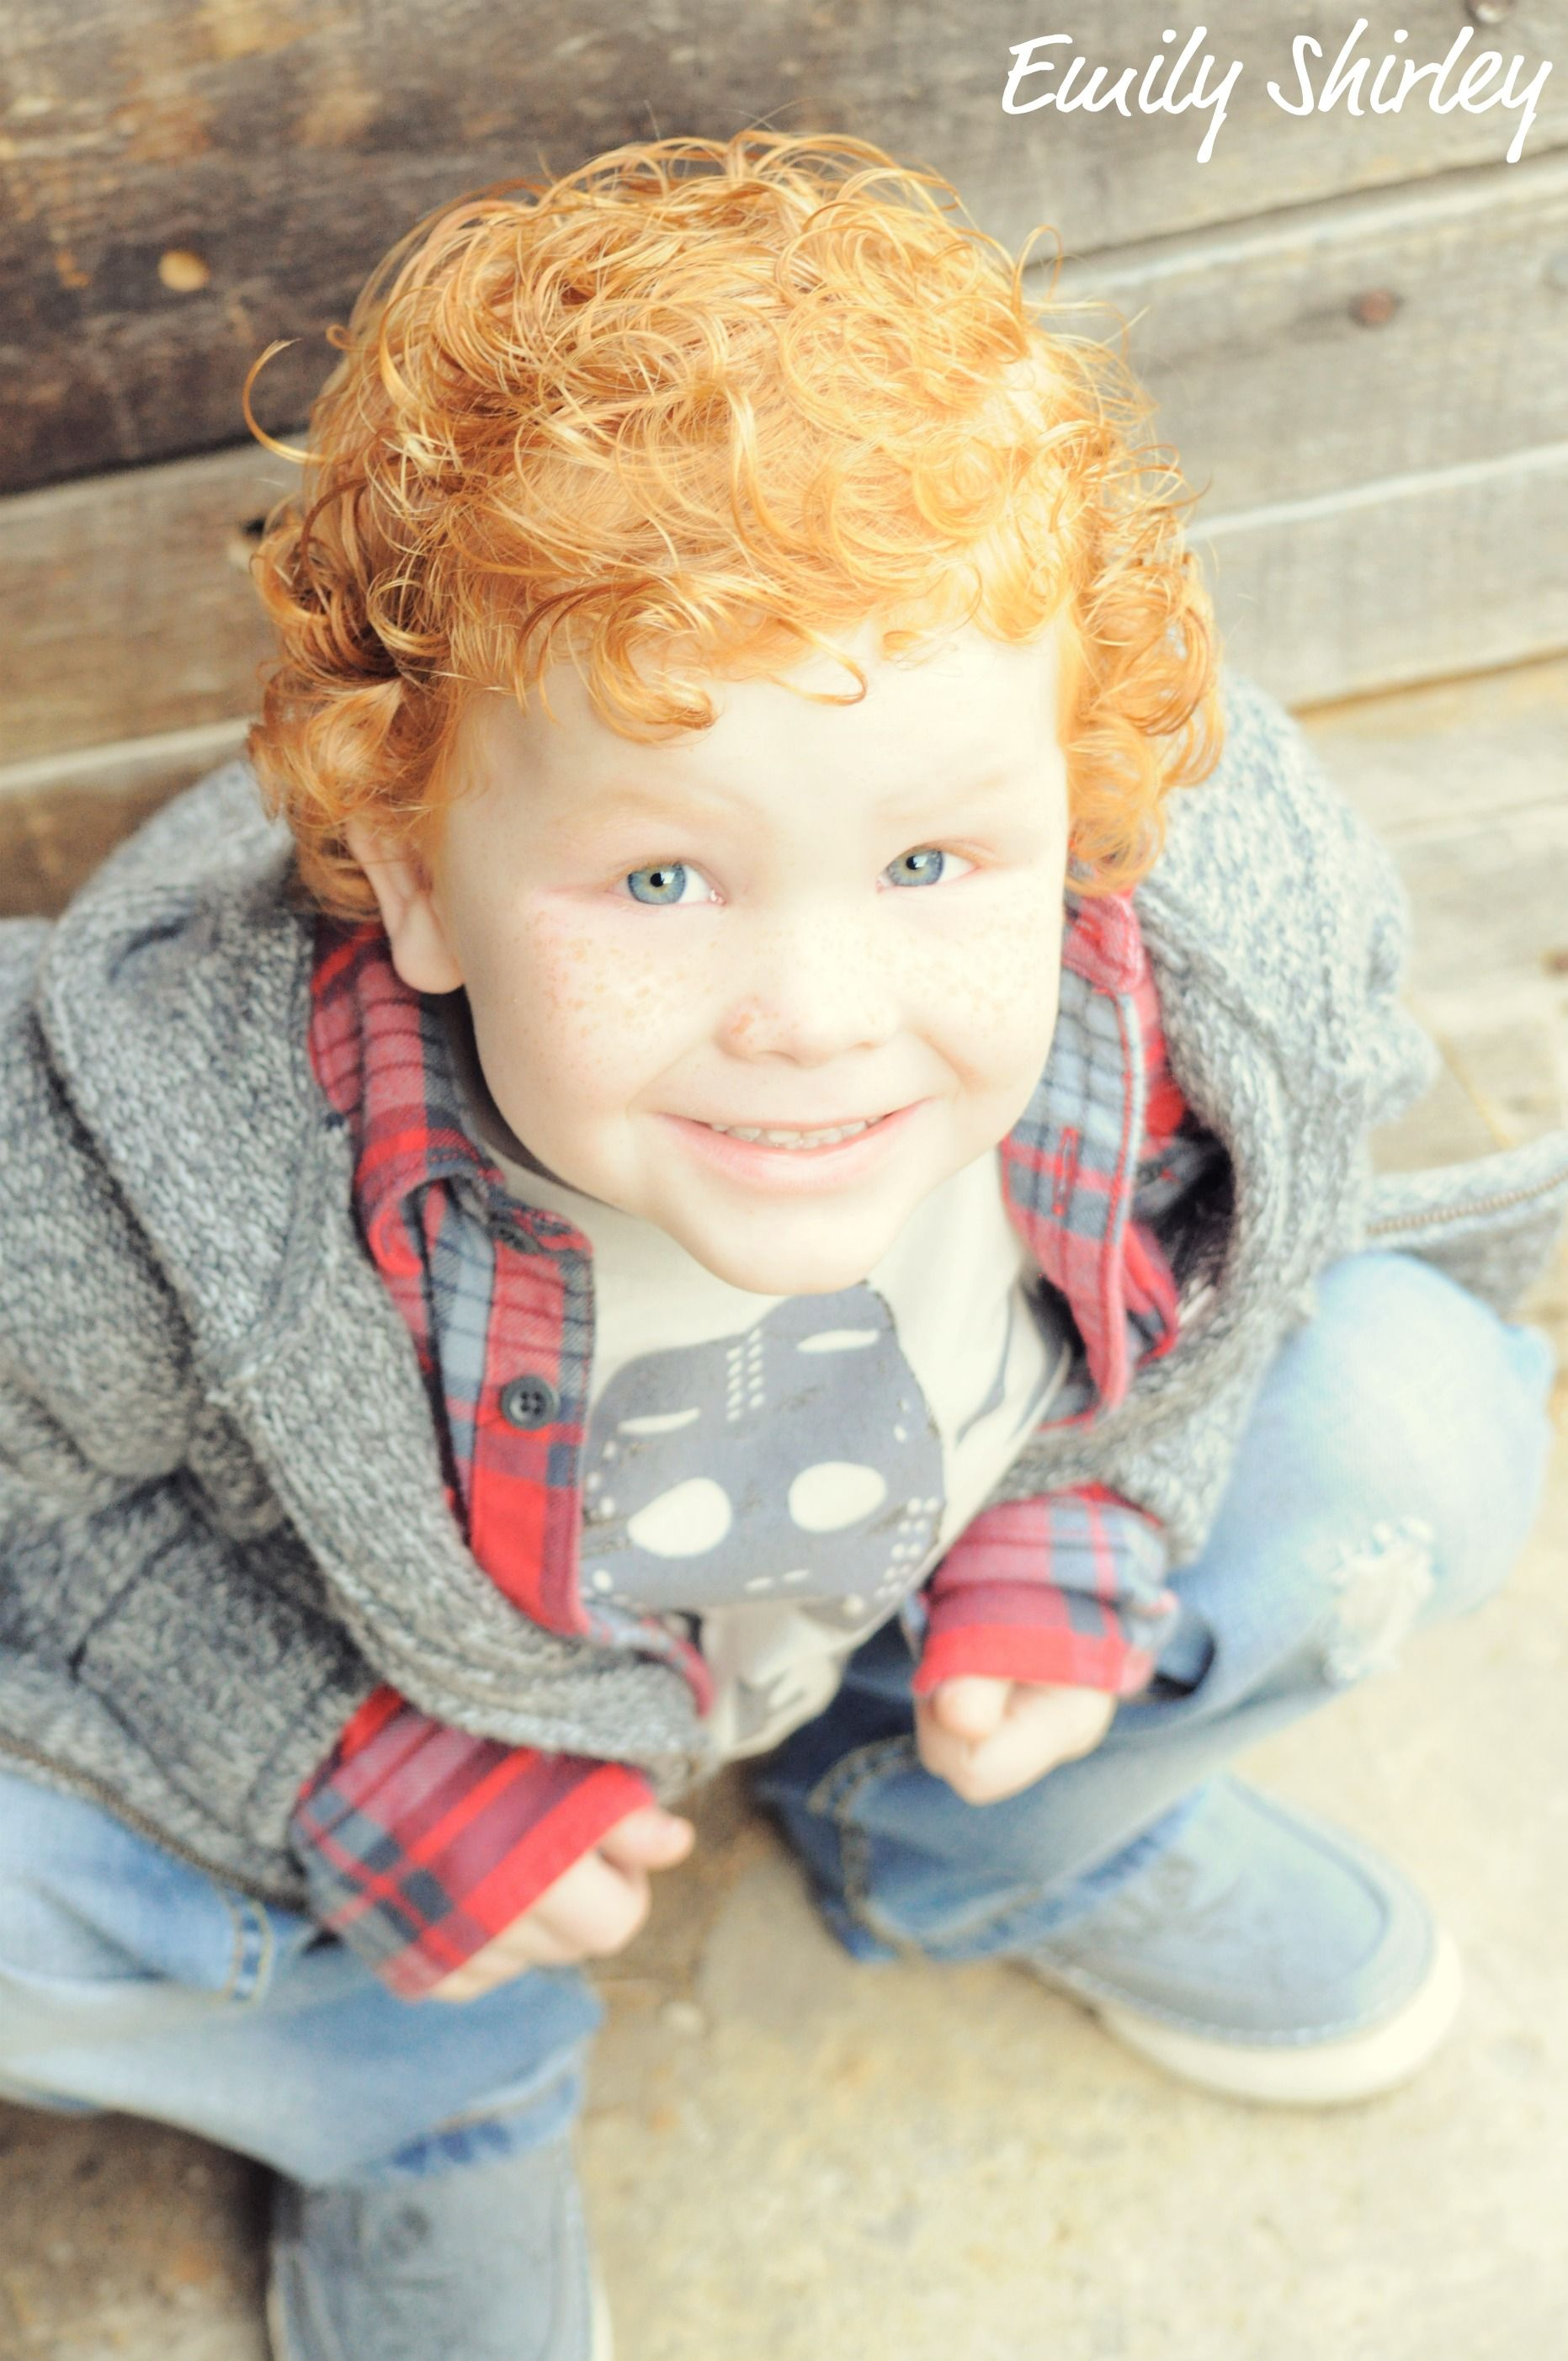 I have a thing for kids with red curly hair Reminds me on my